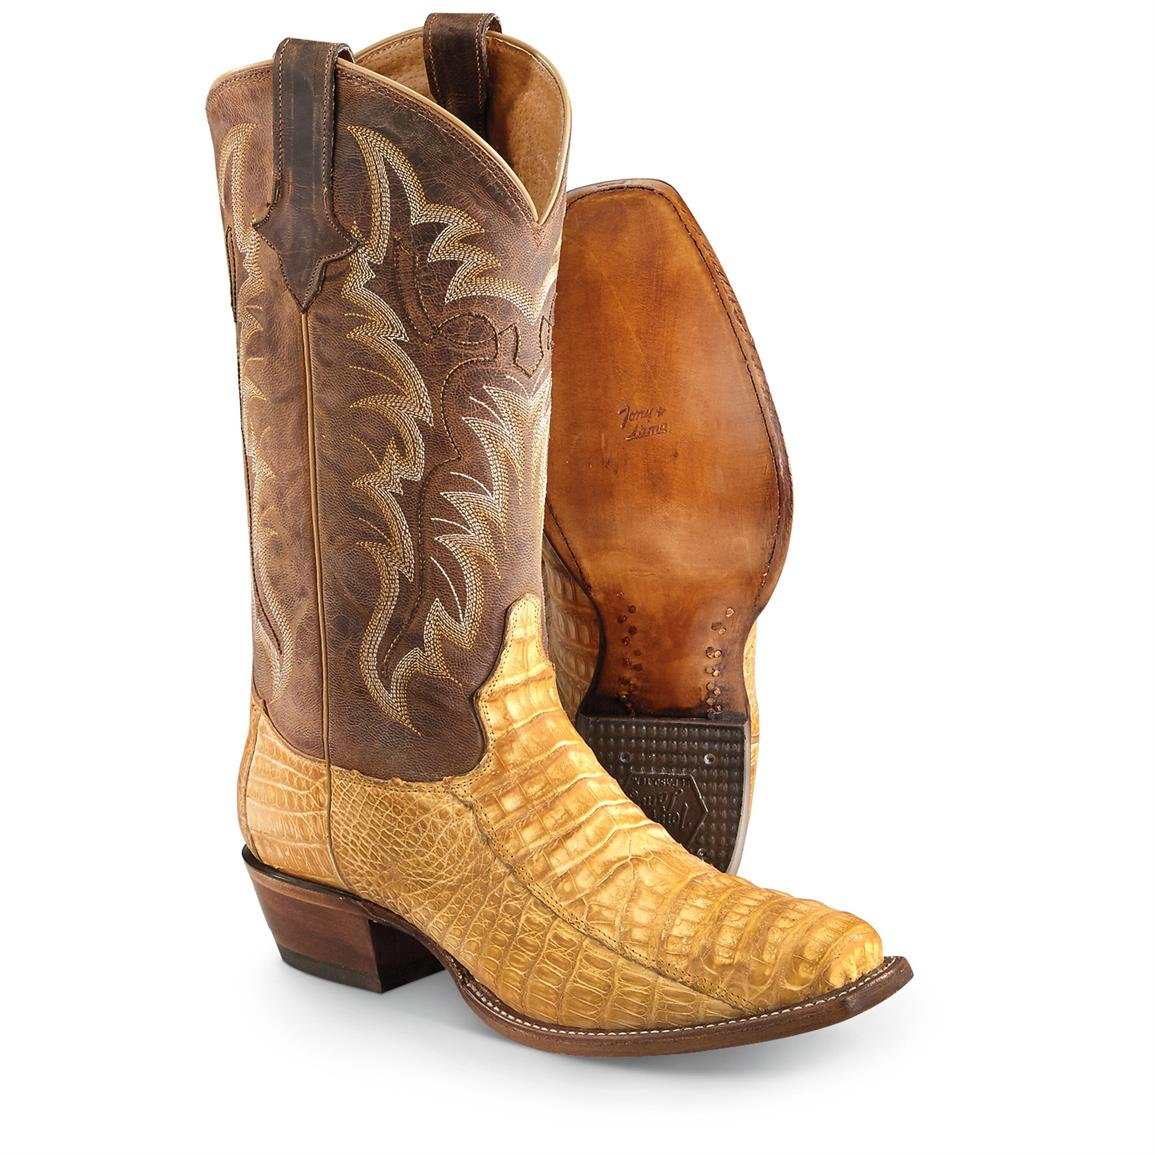 Tony Lama Suede Caiman Belly Cowboy Boots, Buttercup